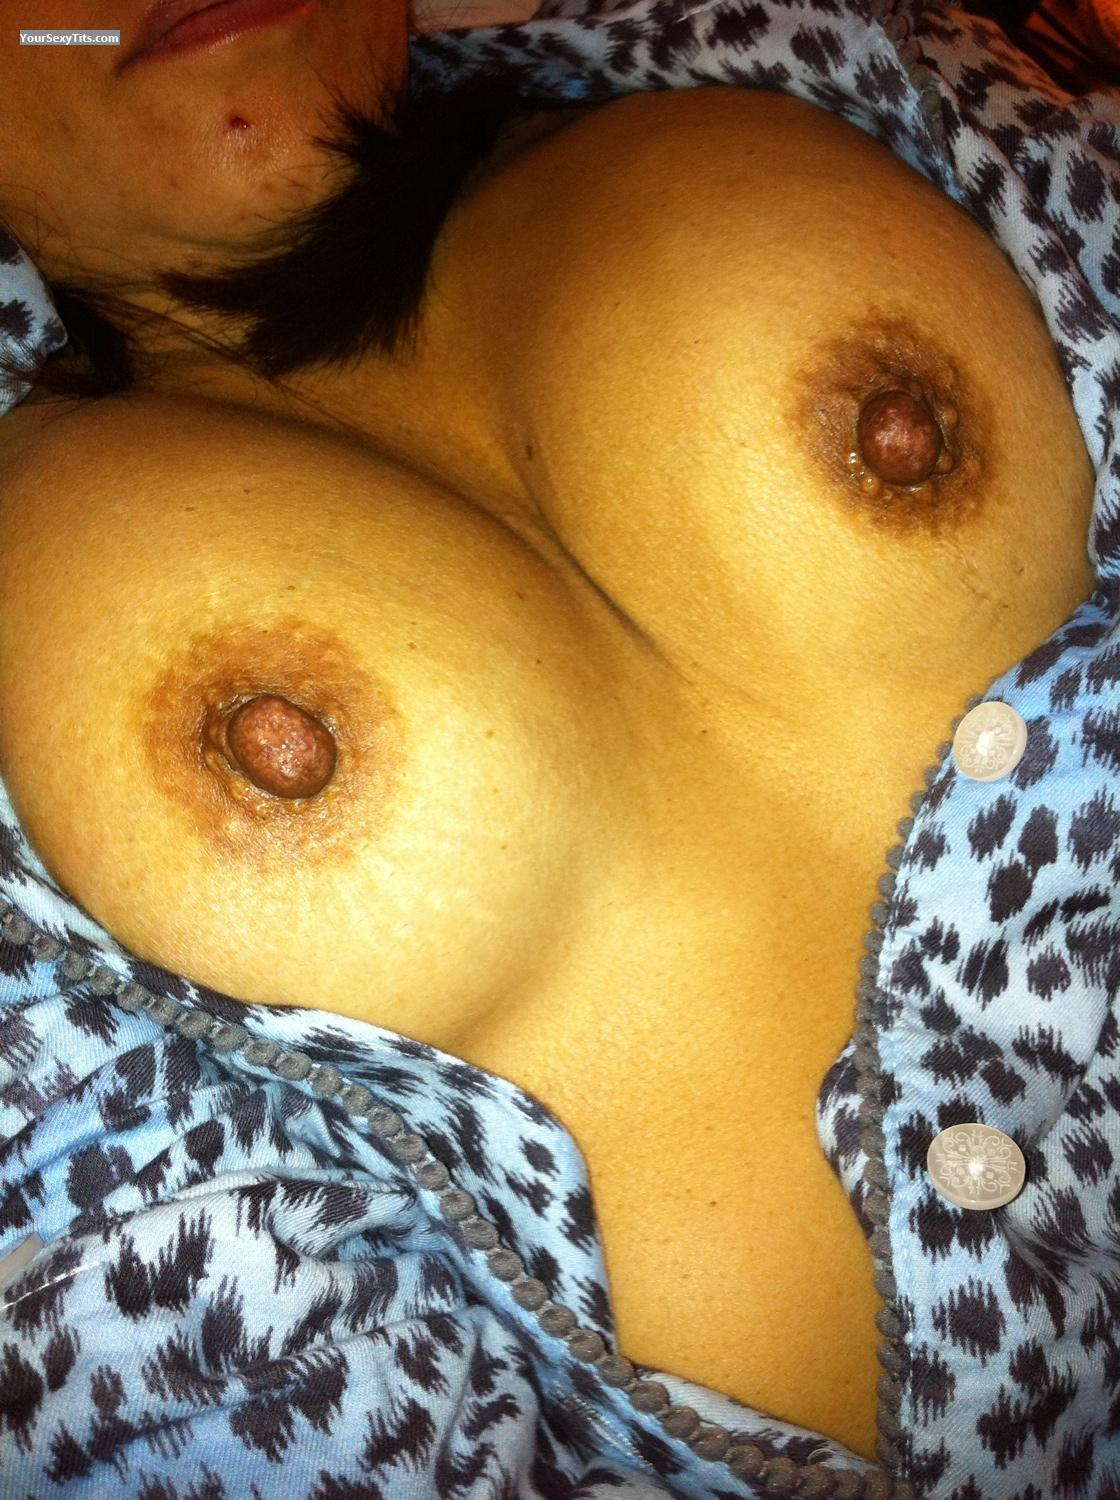 Tit Flash: Medium Tits By IPhone - Asian Milf from United States